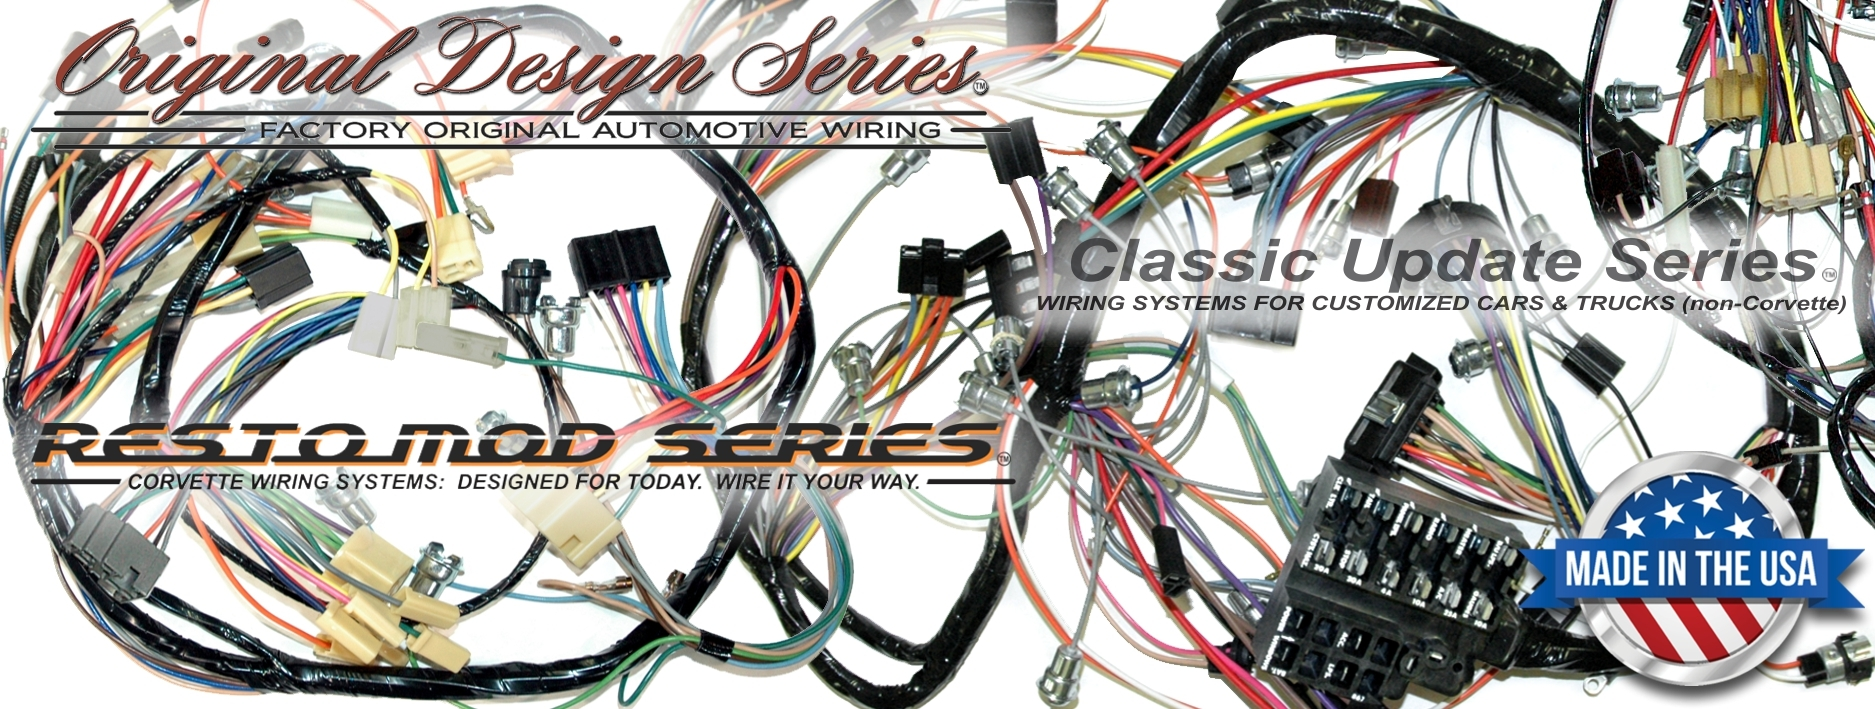 new header wiring_harnesses exact oem reproduction wiring harnesses and restomod wiring wiring harness for cars at panicattacktreatment.co